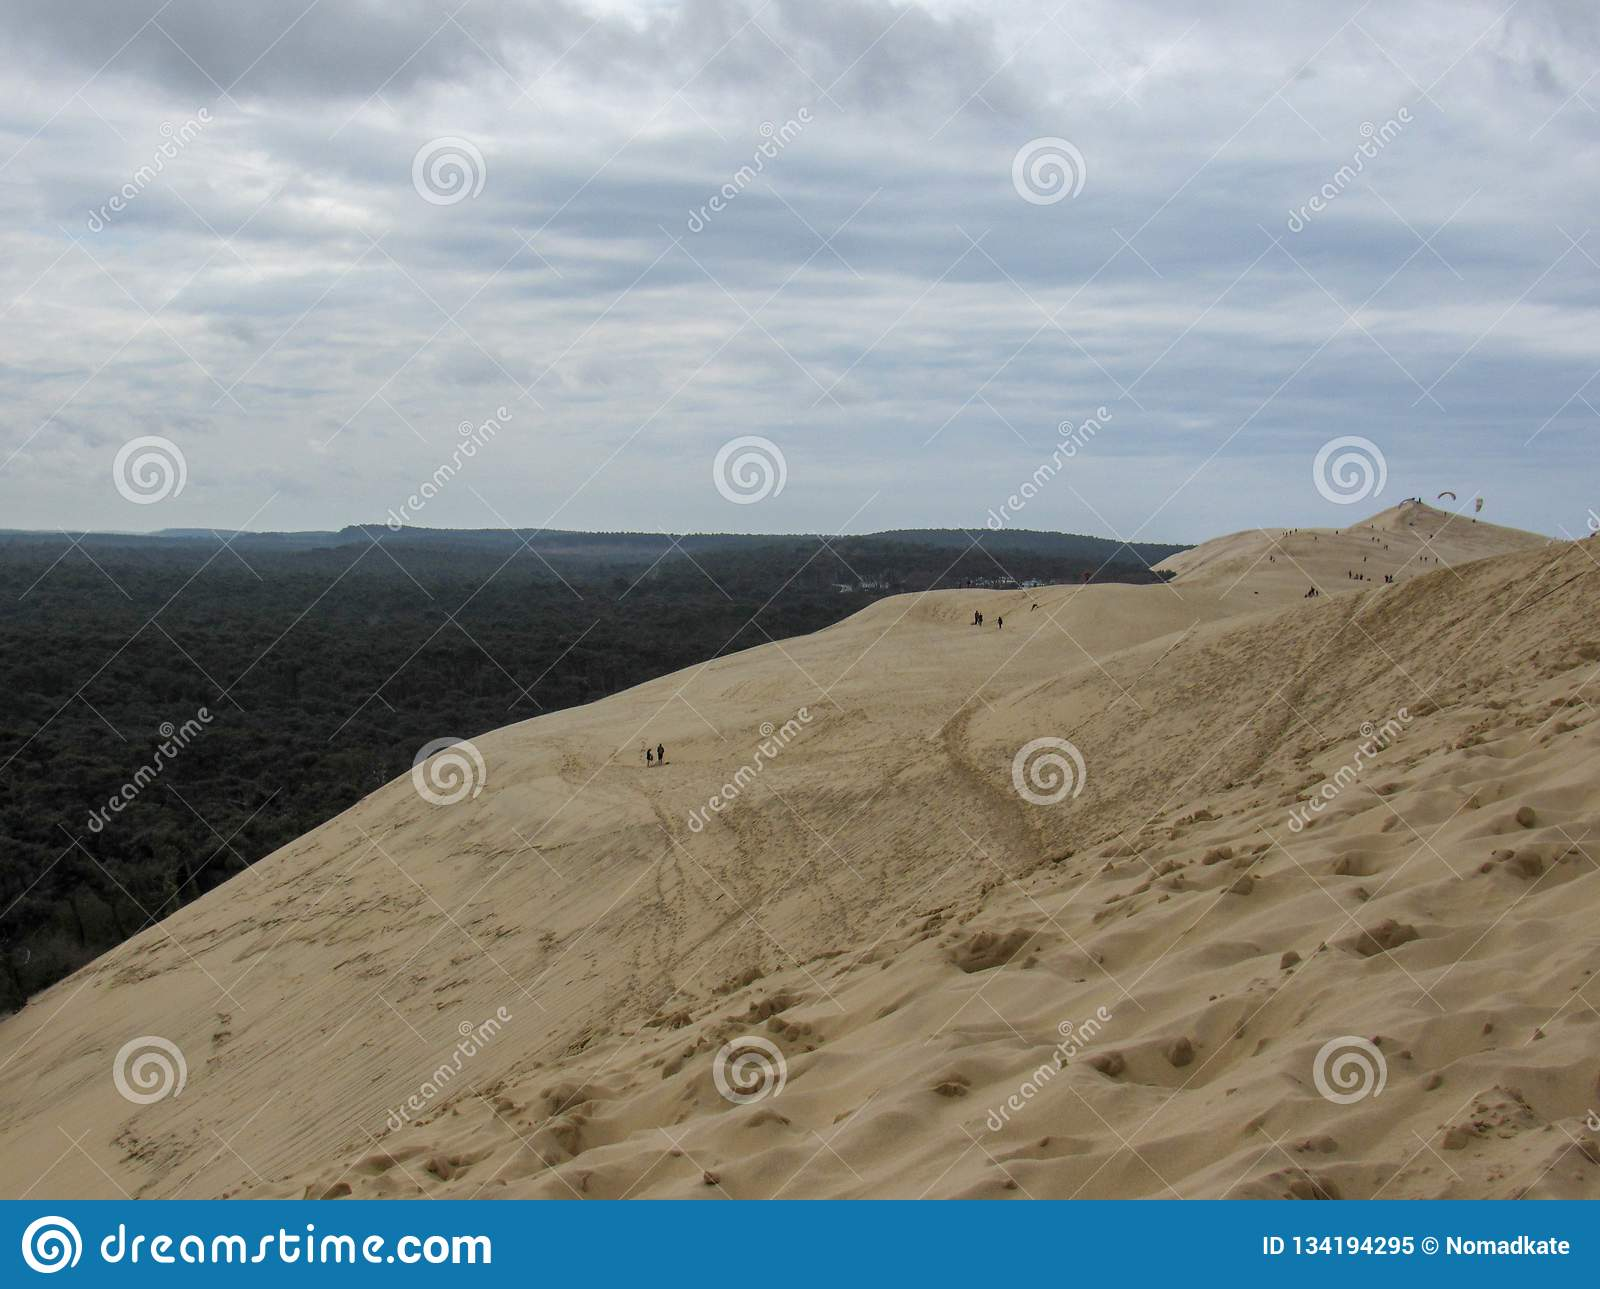 dune of pyla at arcachon bay atlantic ocean from the summit famous tourist destination in in europe arcachon bay aquitaine france